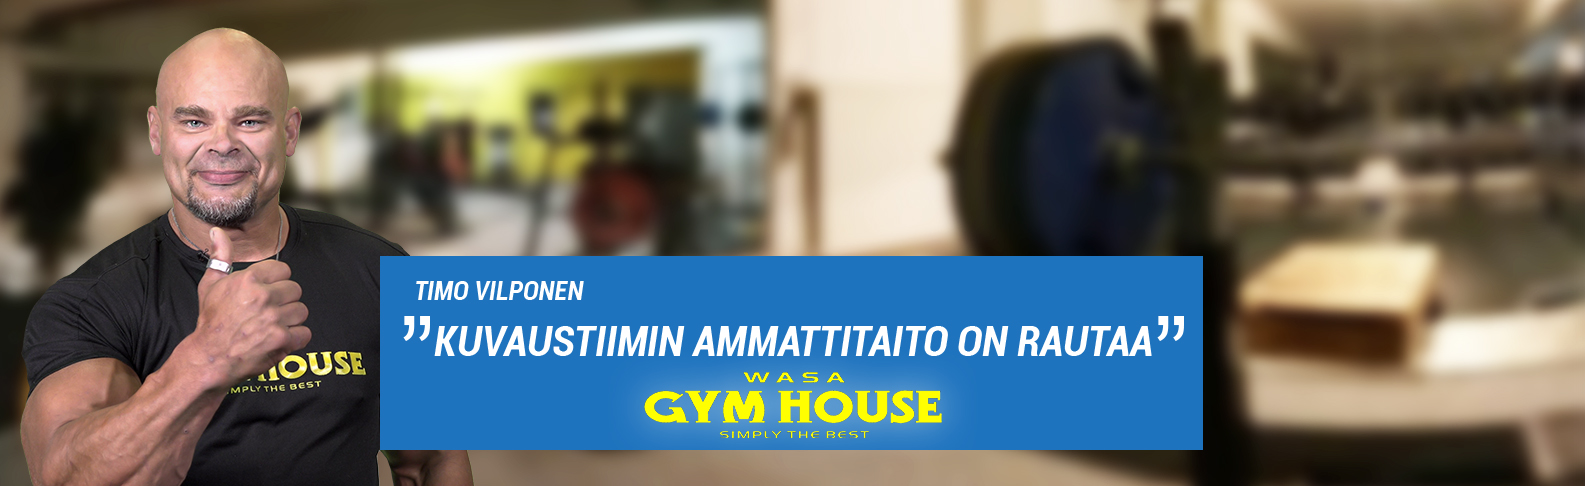 Wasa Gym House